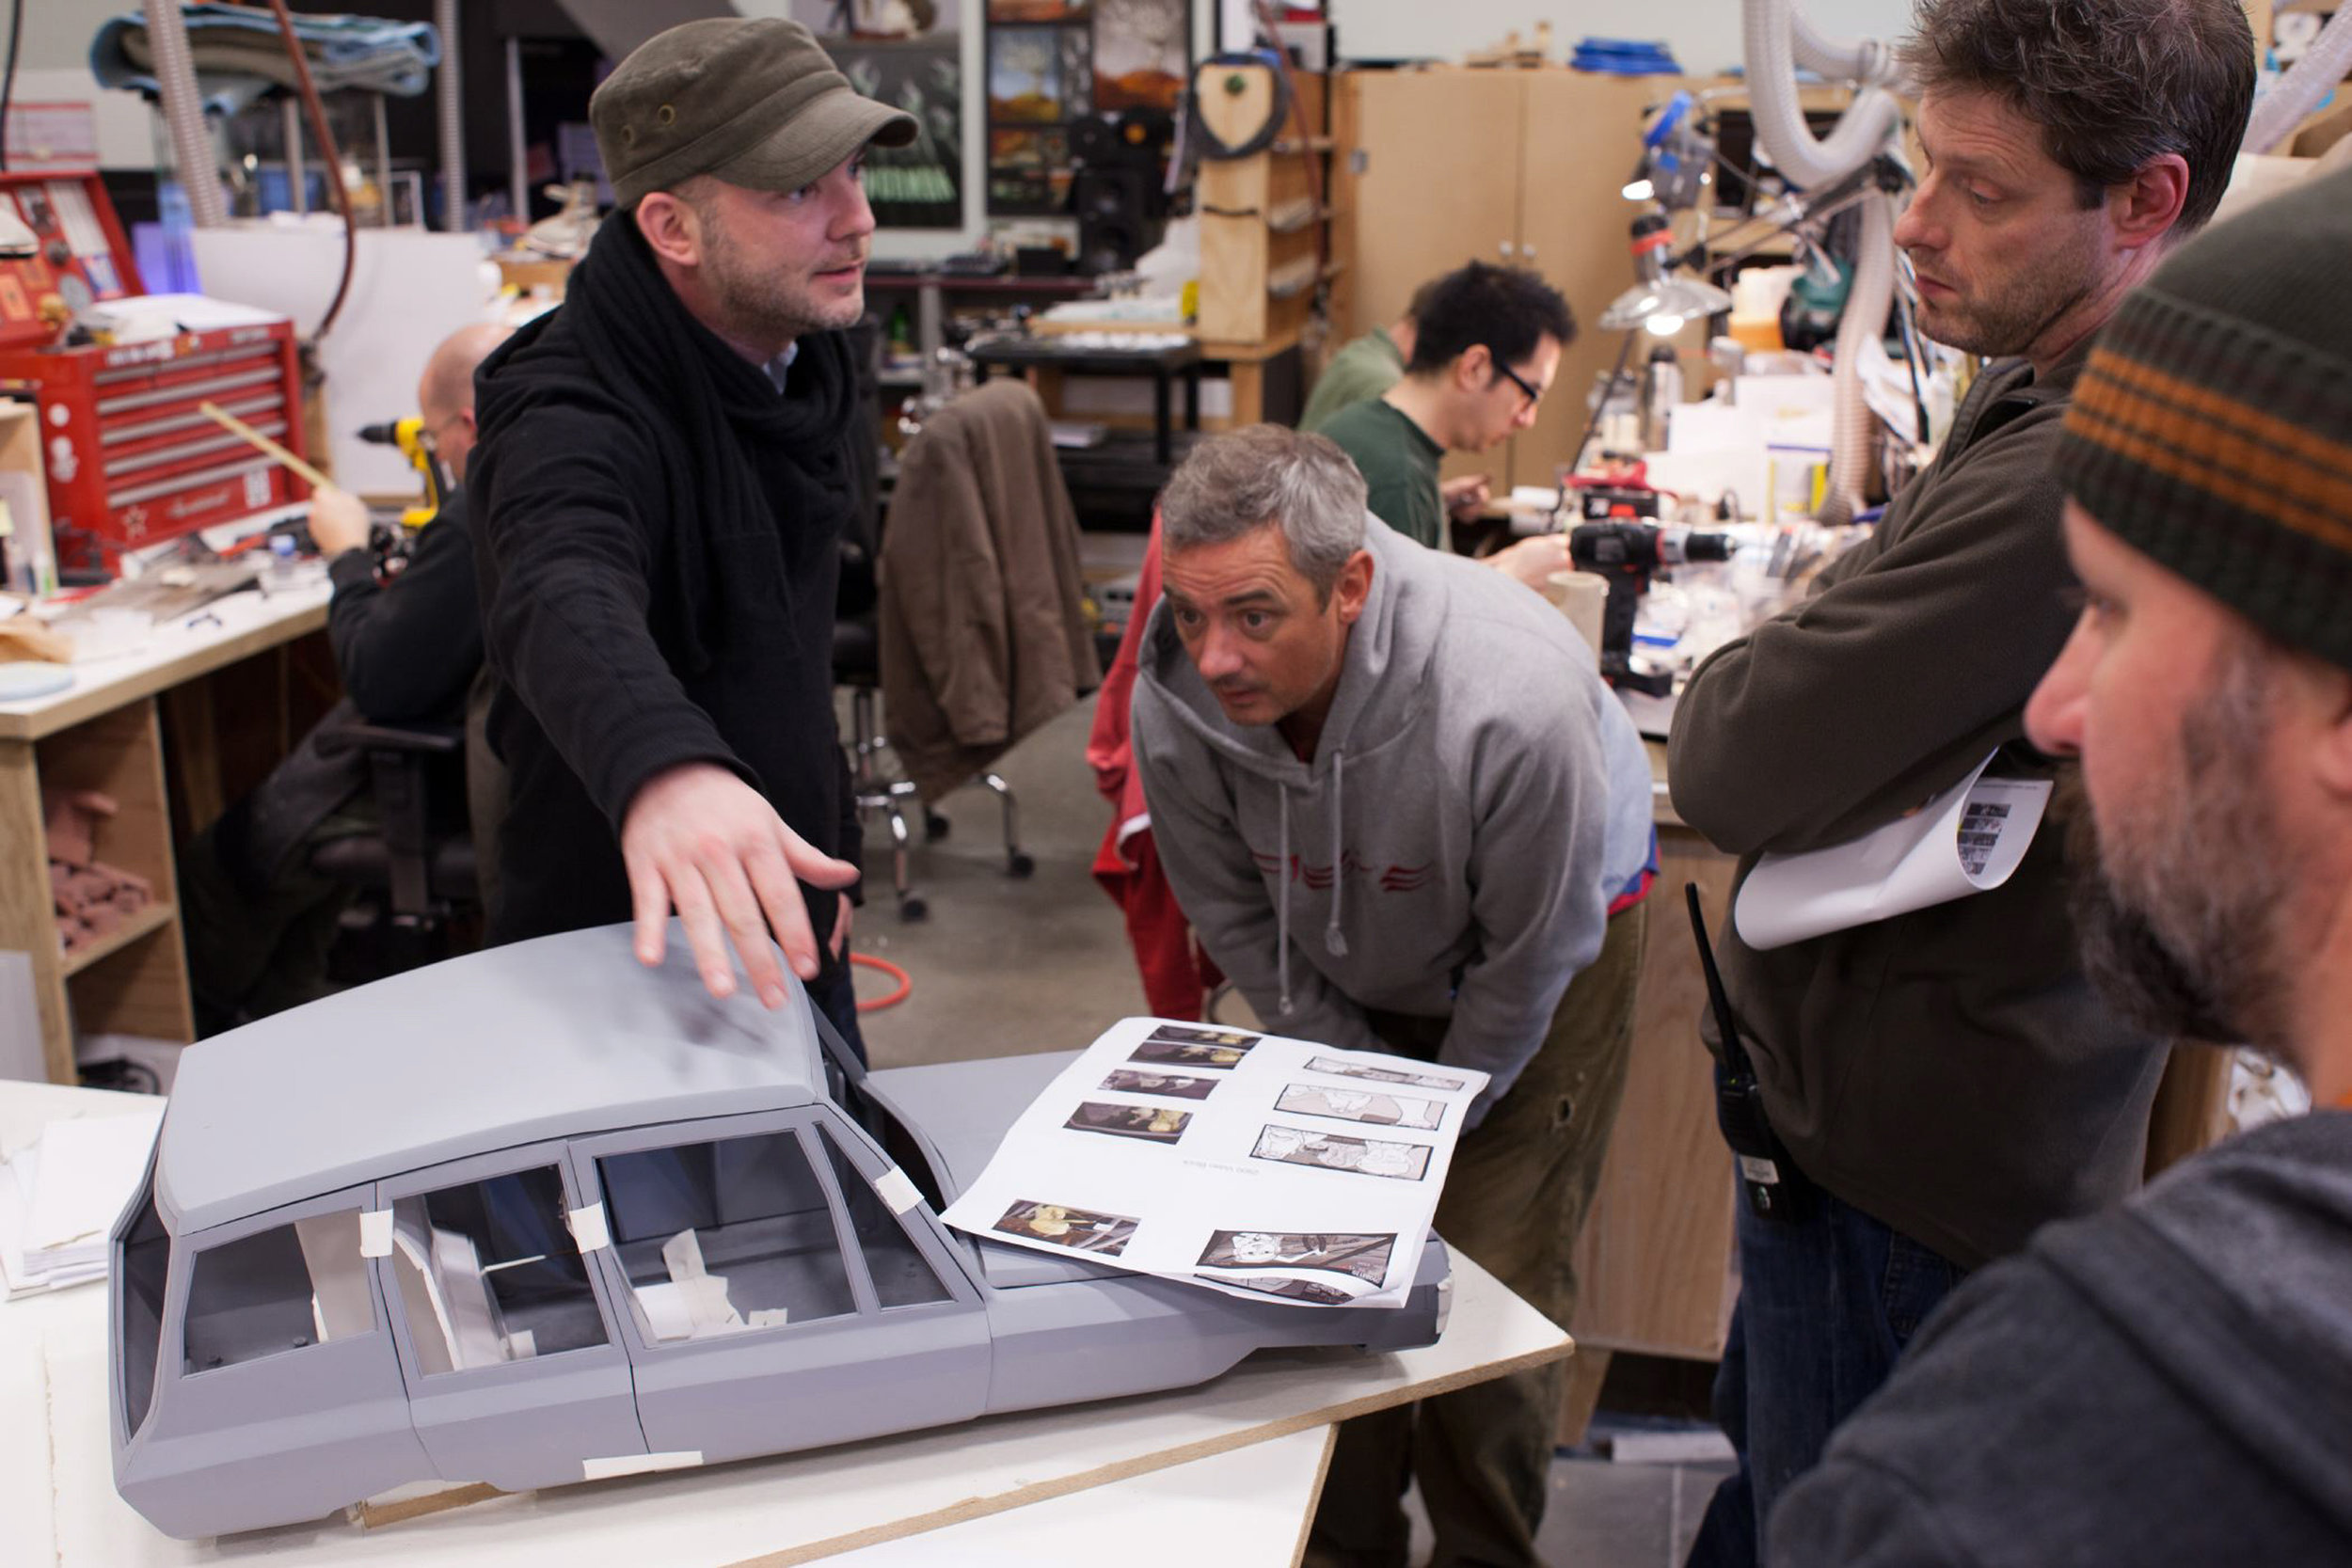 (l to r.) Directors Chris Butler and Sam Fell discuss a car sculpture with Director of Photography Tristan Oliver for ParaNorman, the new 3D stop-motion comedy thriller.  Credit: LAIKA, Inc.